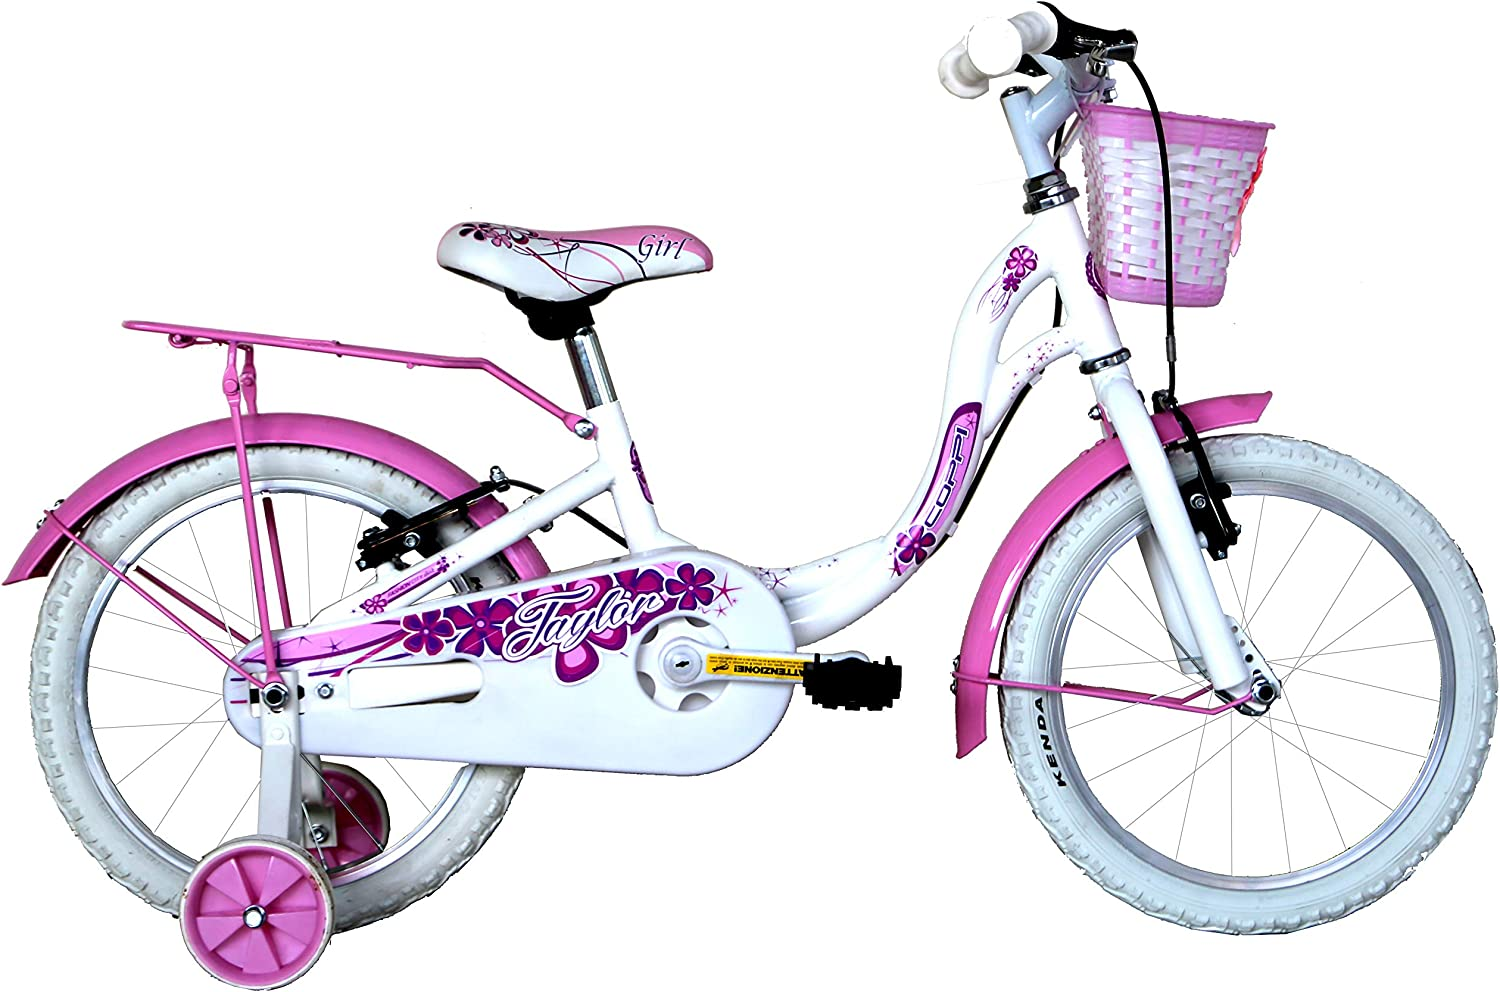 Coppi ctb 16 Bimba, City Bike Niña, Blanco, S: Amazon.es: Deportes y aire libre